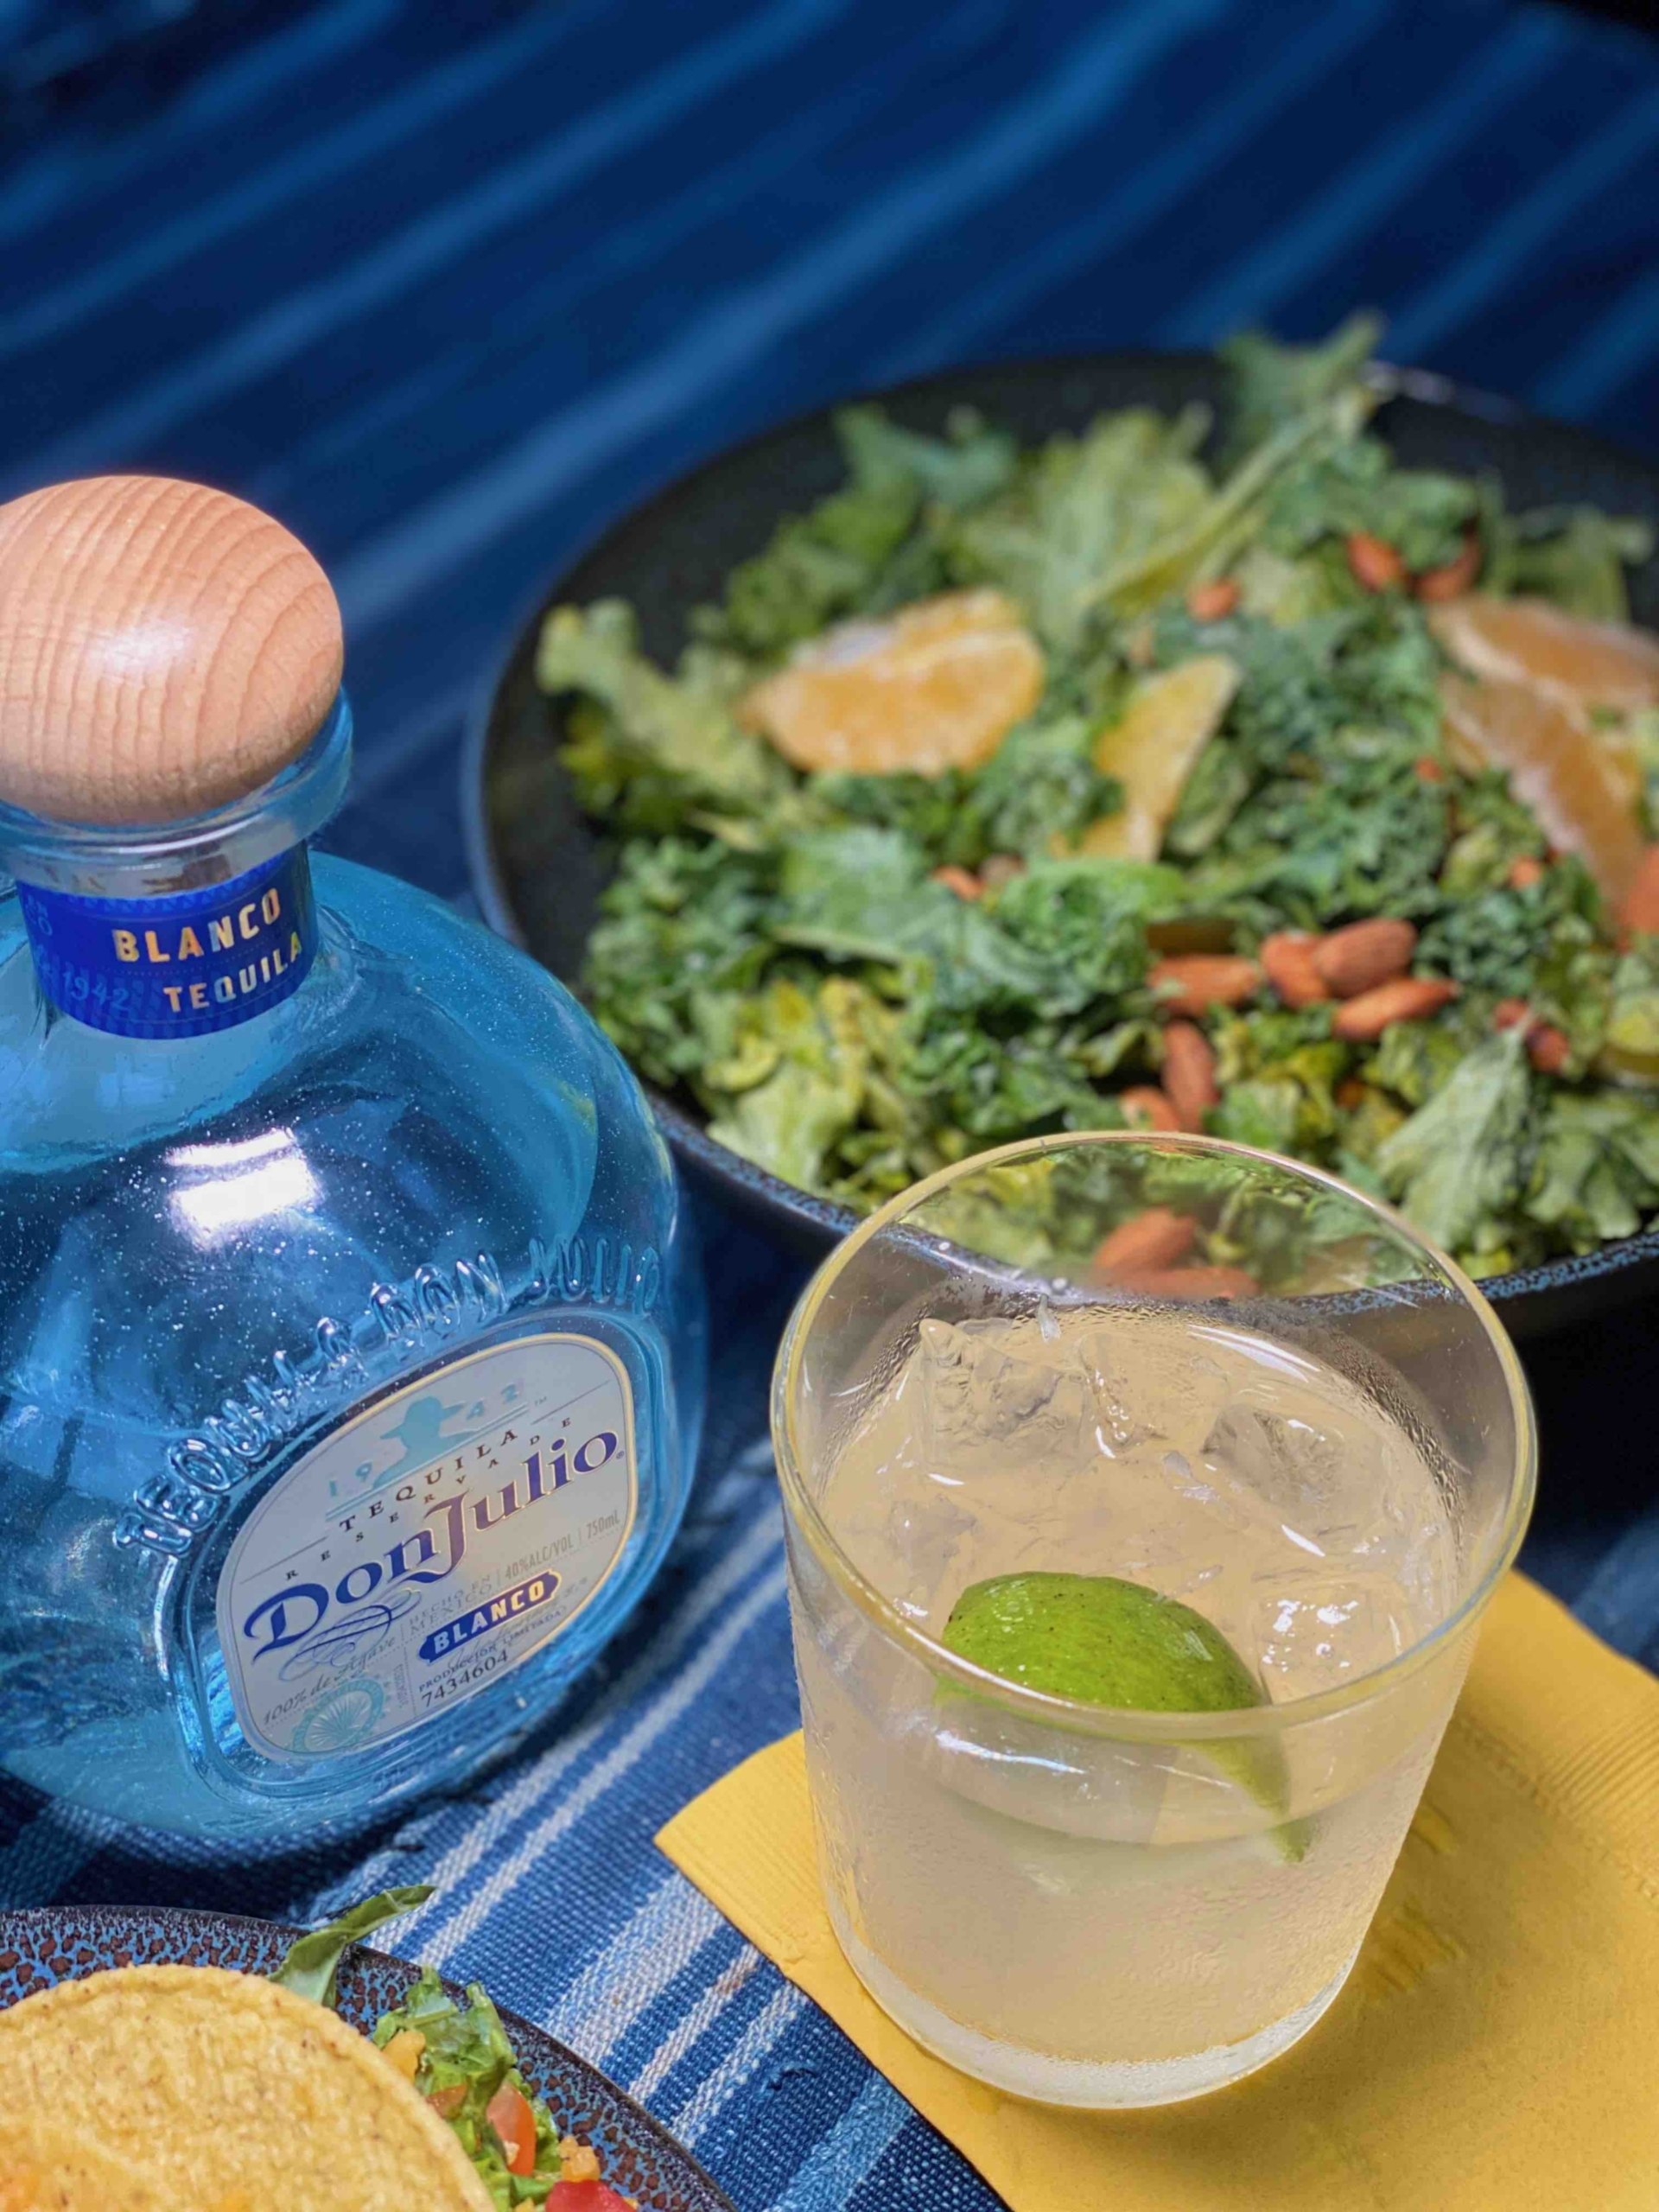 Tequila Don Julio Blanco Margarita Is A Must To Make At Home On National Margarita Day